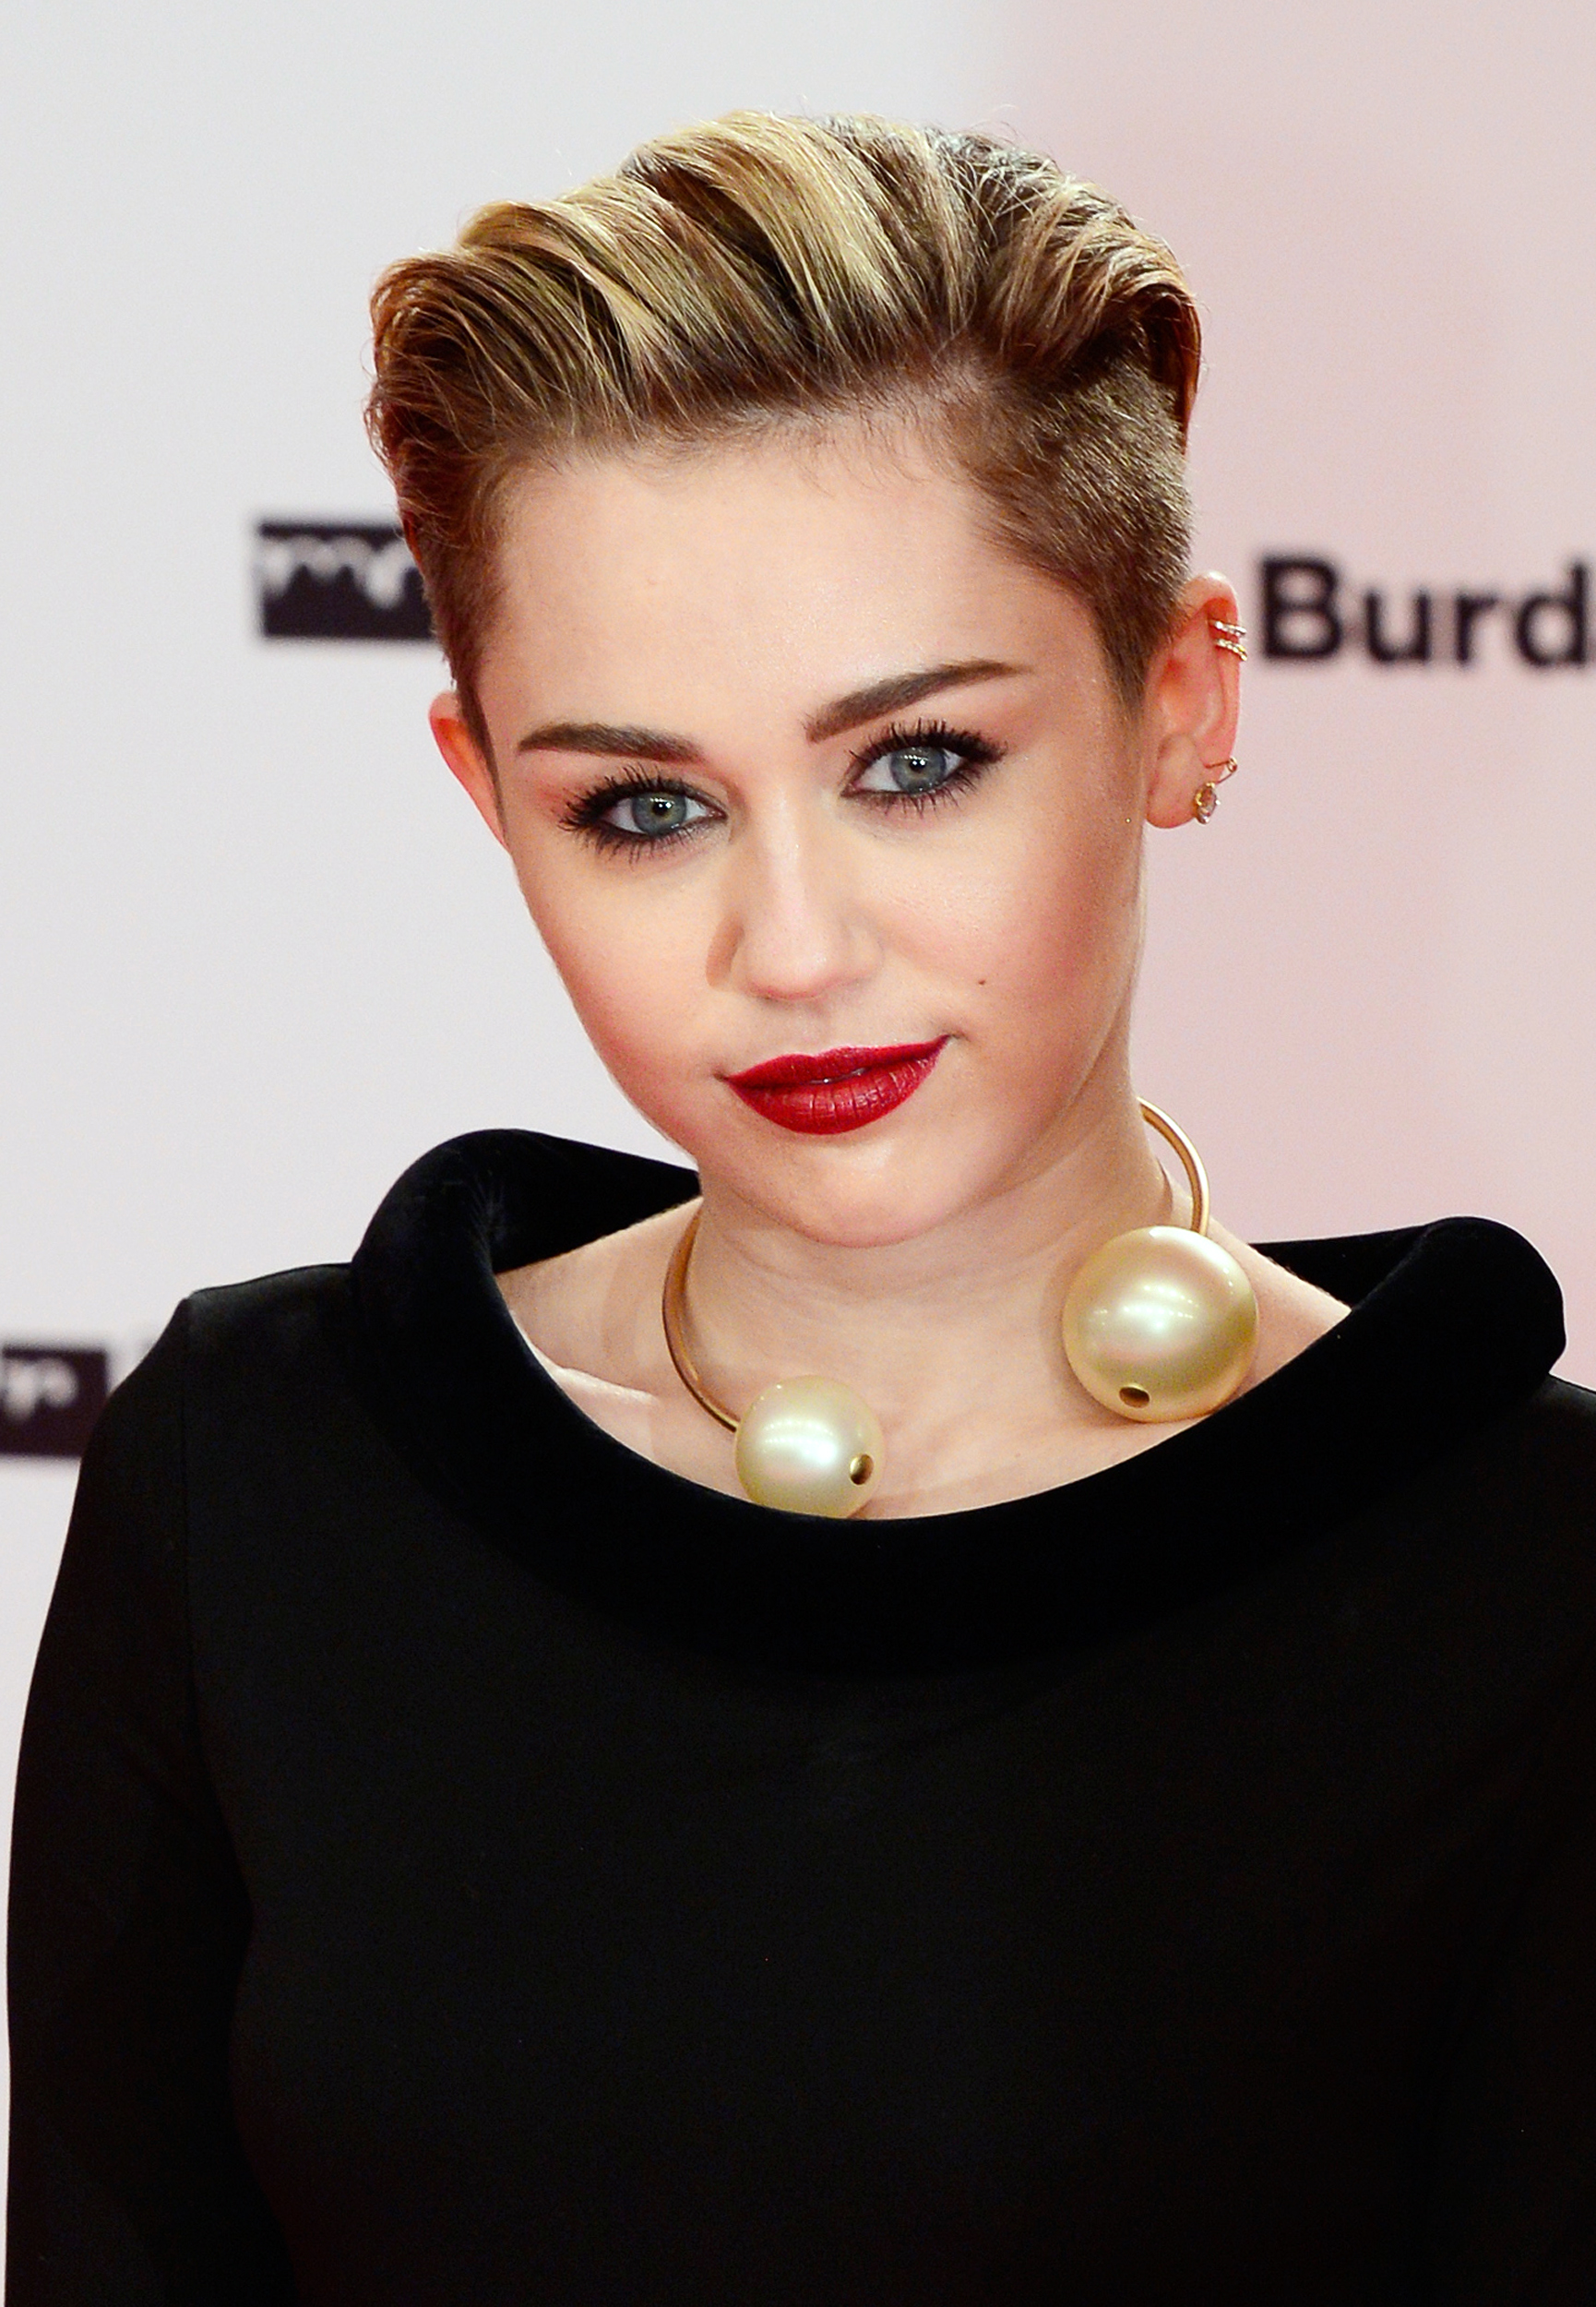 5 Things We Learned About Miley Cyrus In Her New York Times'Interview